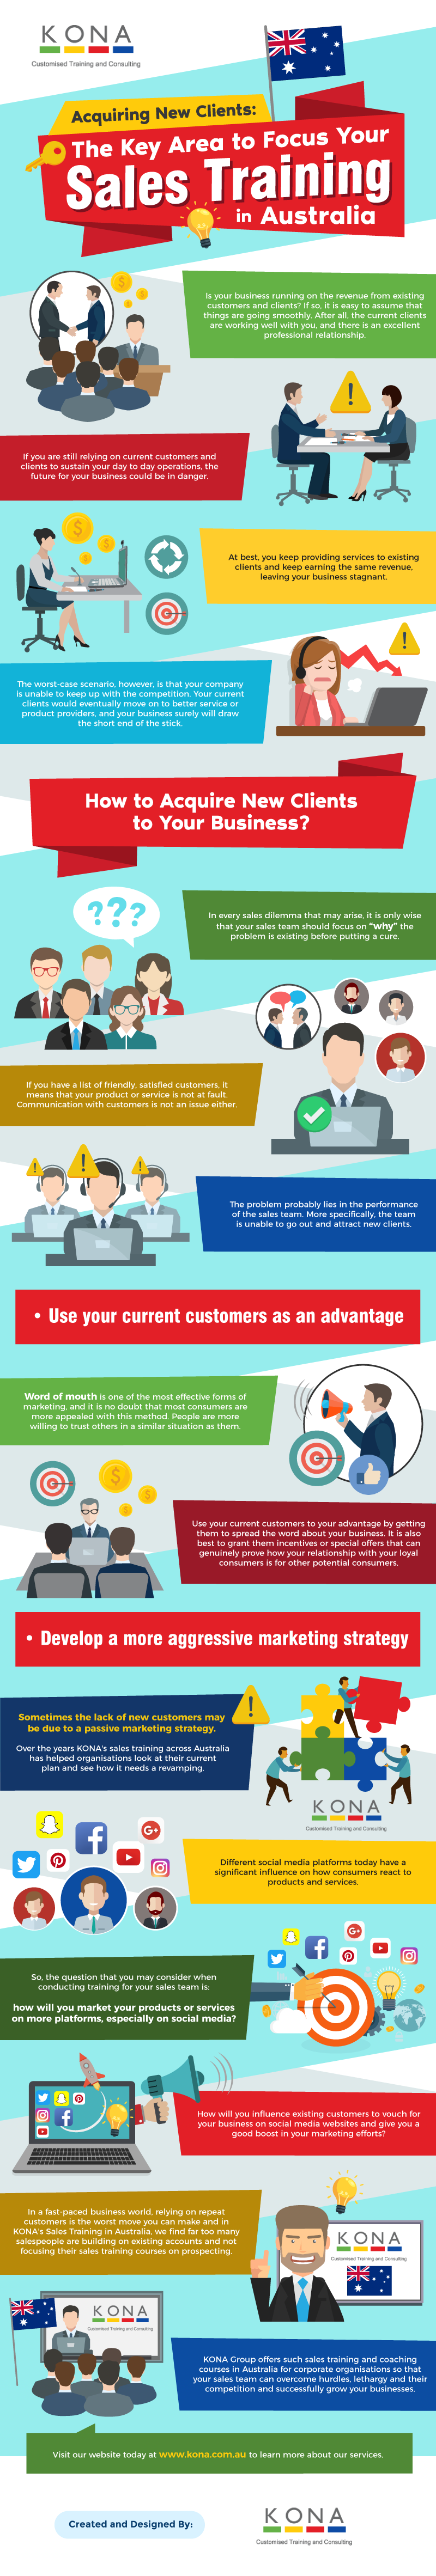 Acquiring New Clients - The Key Area to Focus Your Sales Training in Australia (Infographic)